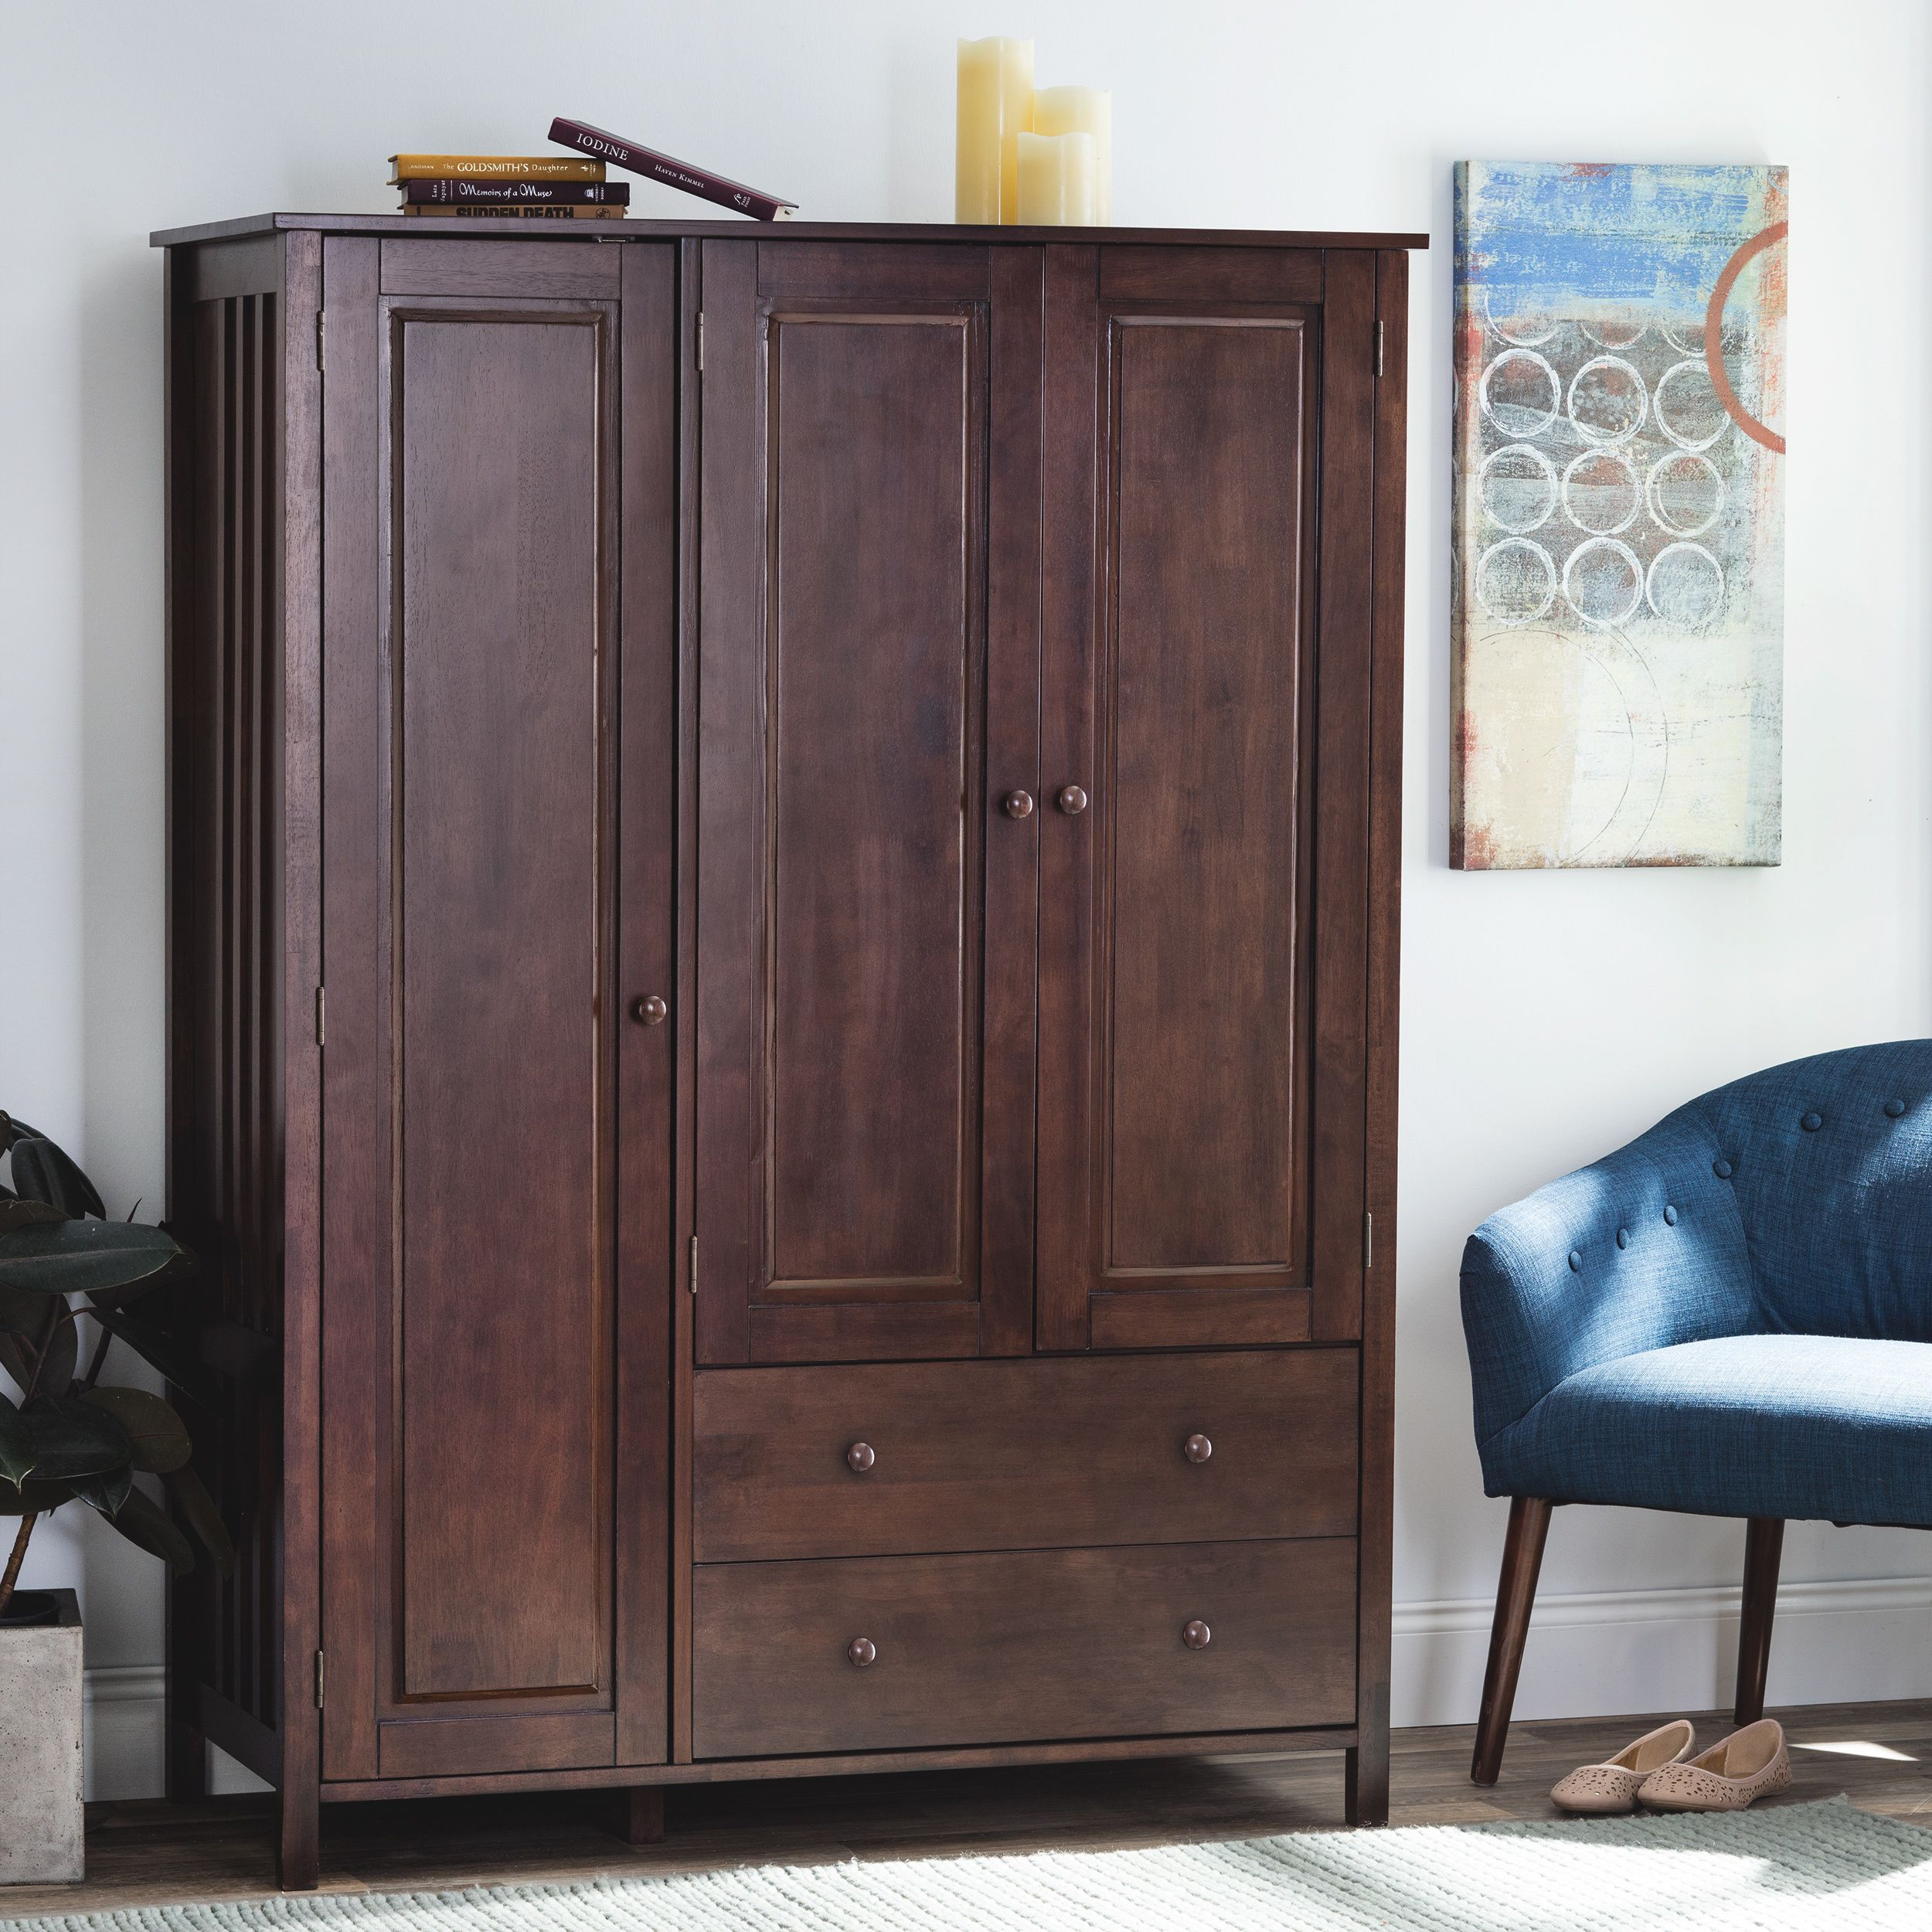 This wenge finish wardrobe features multiple compartments including